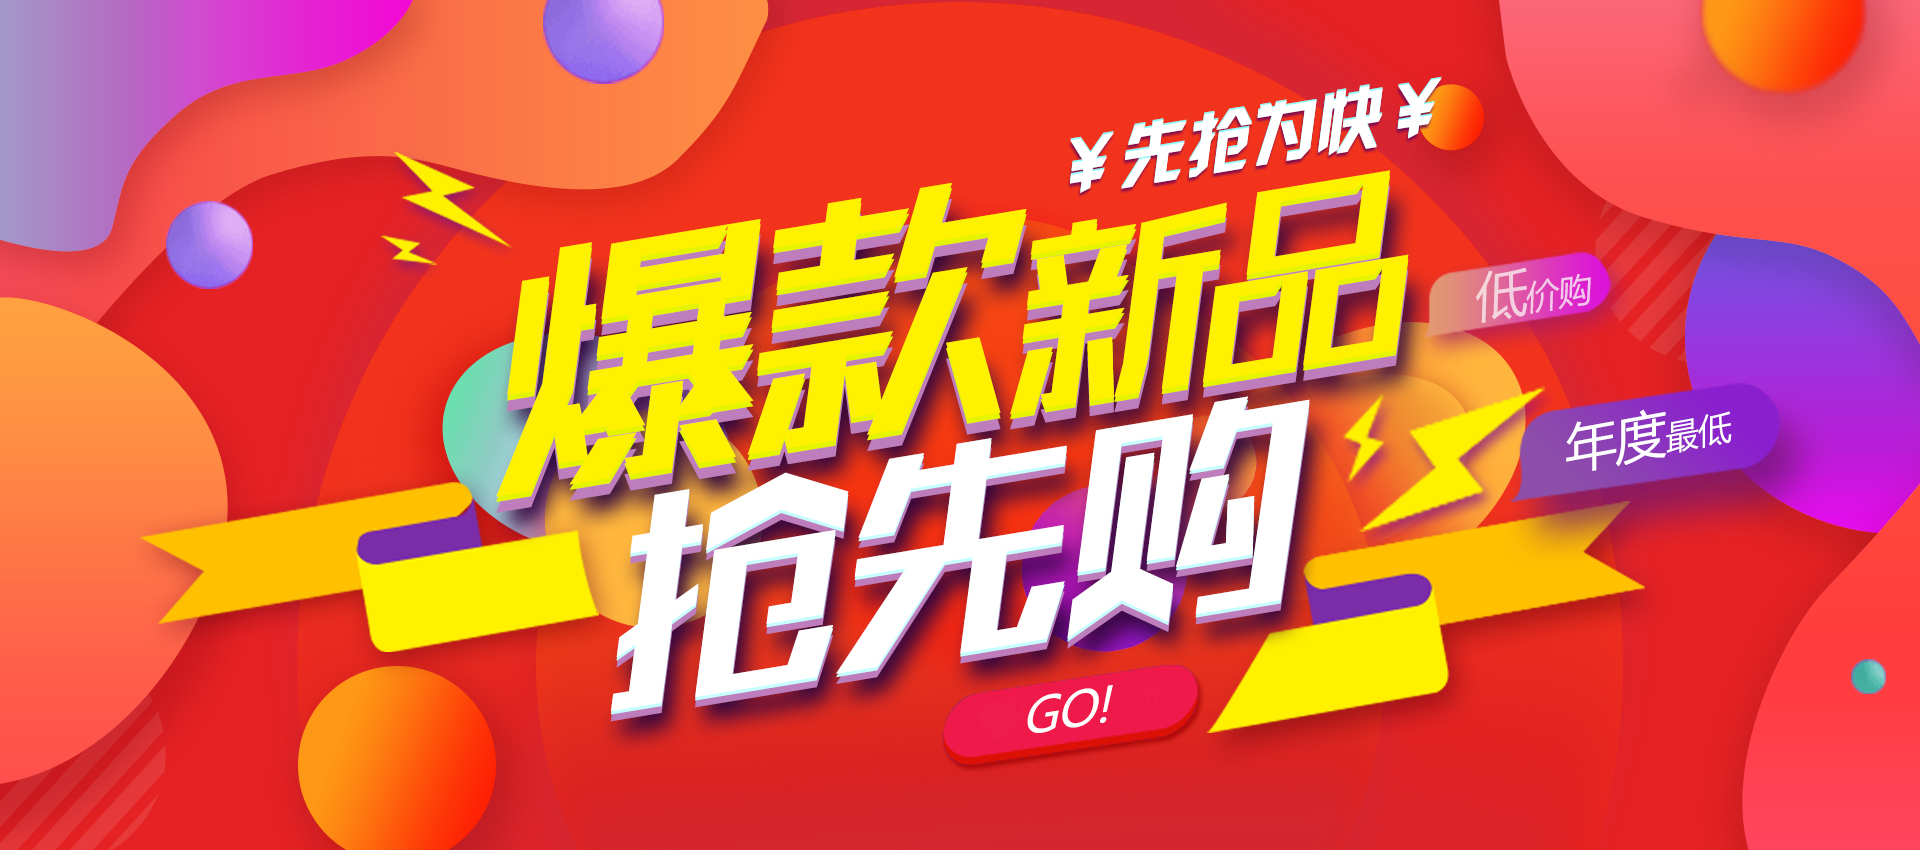 Wanling Plaza First Purchasing Festival Competition for Shuang11 Activities